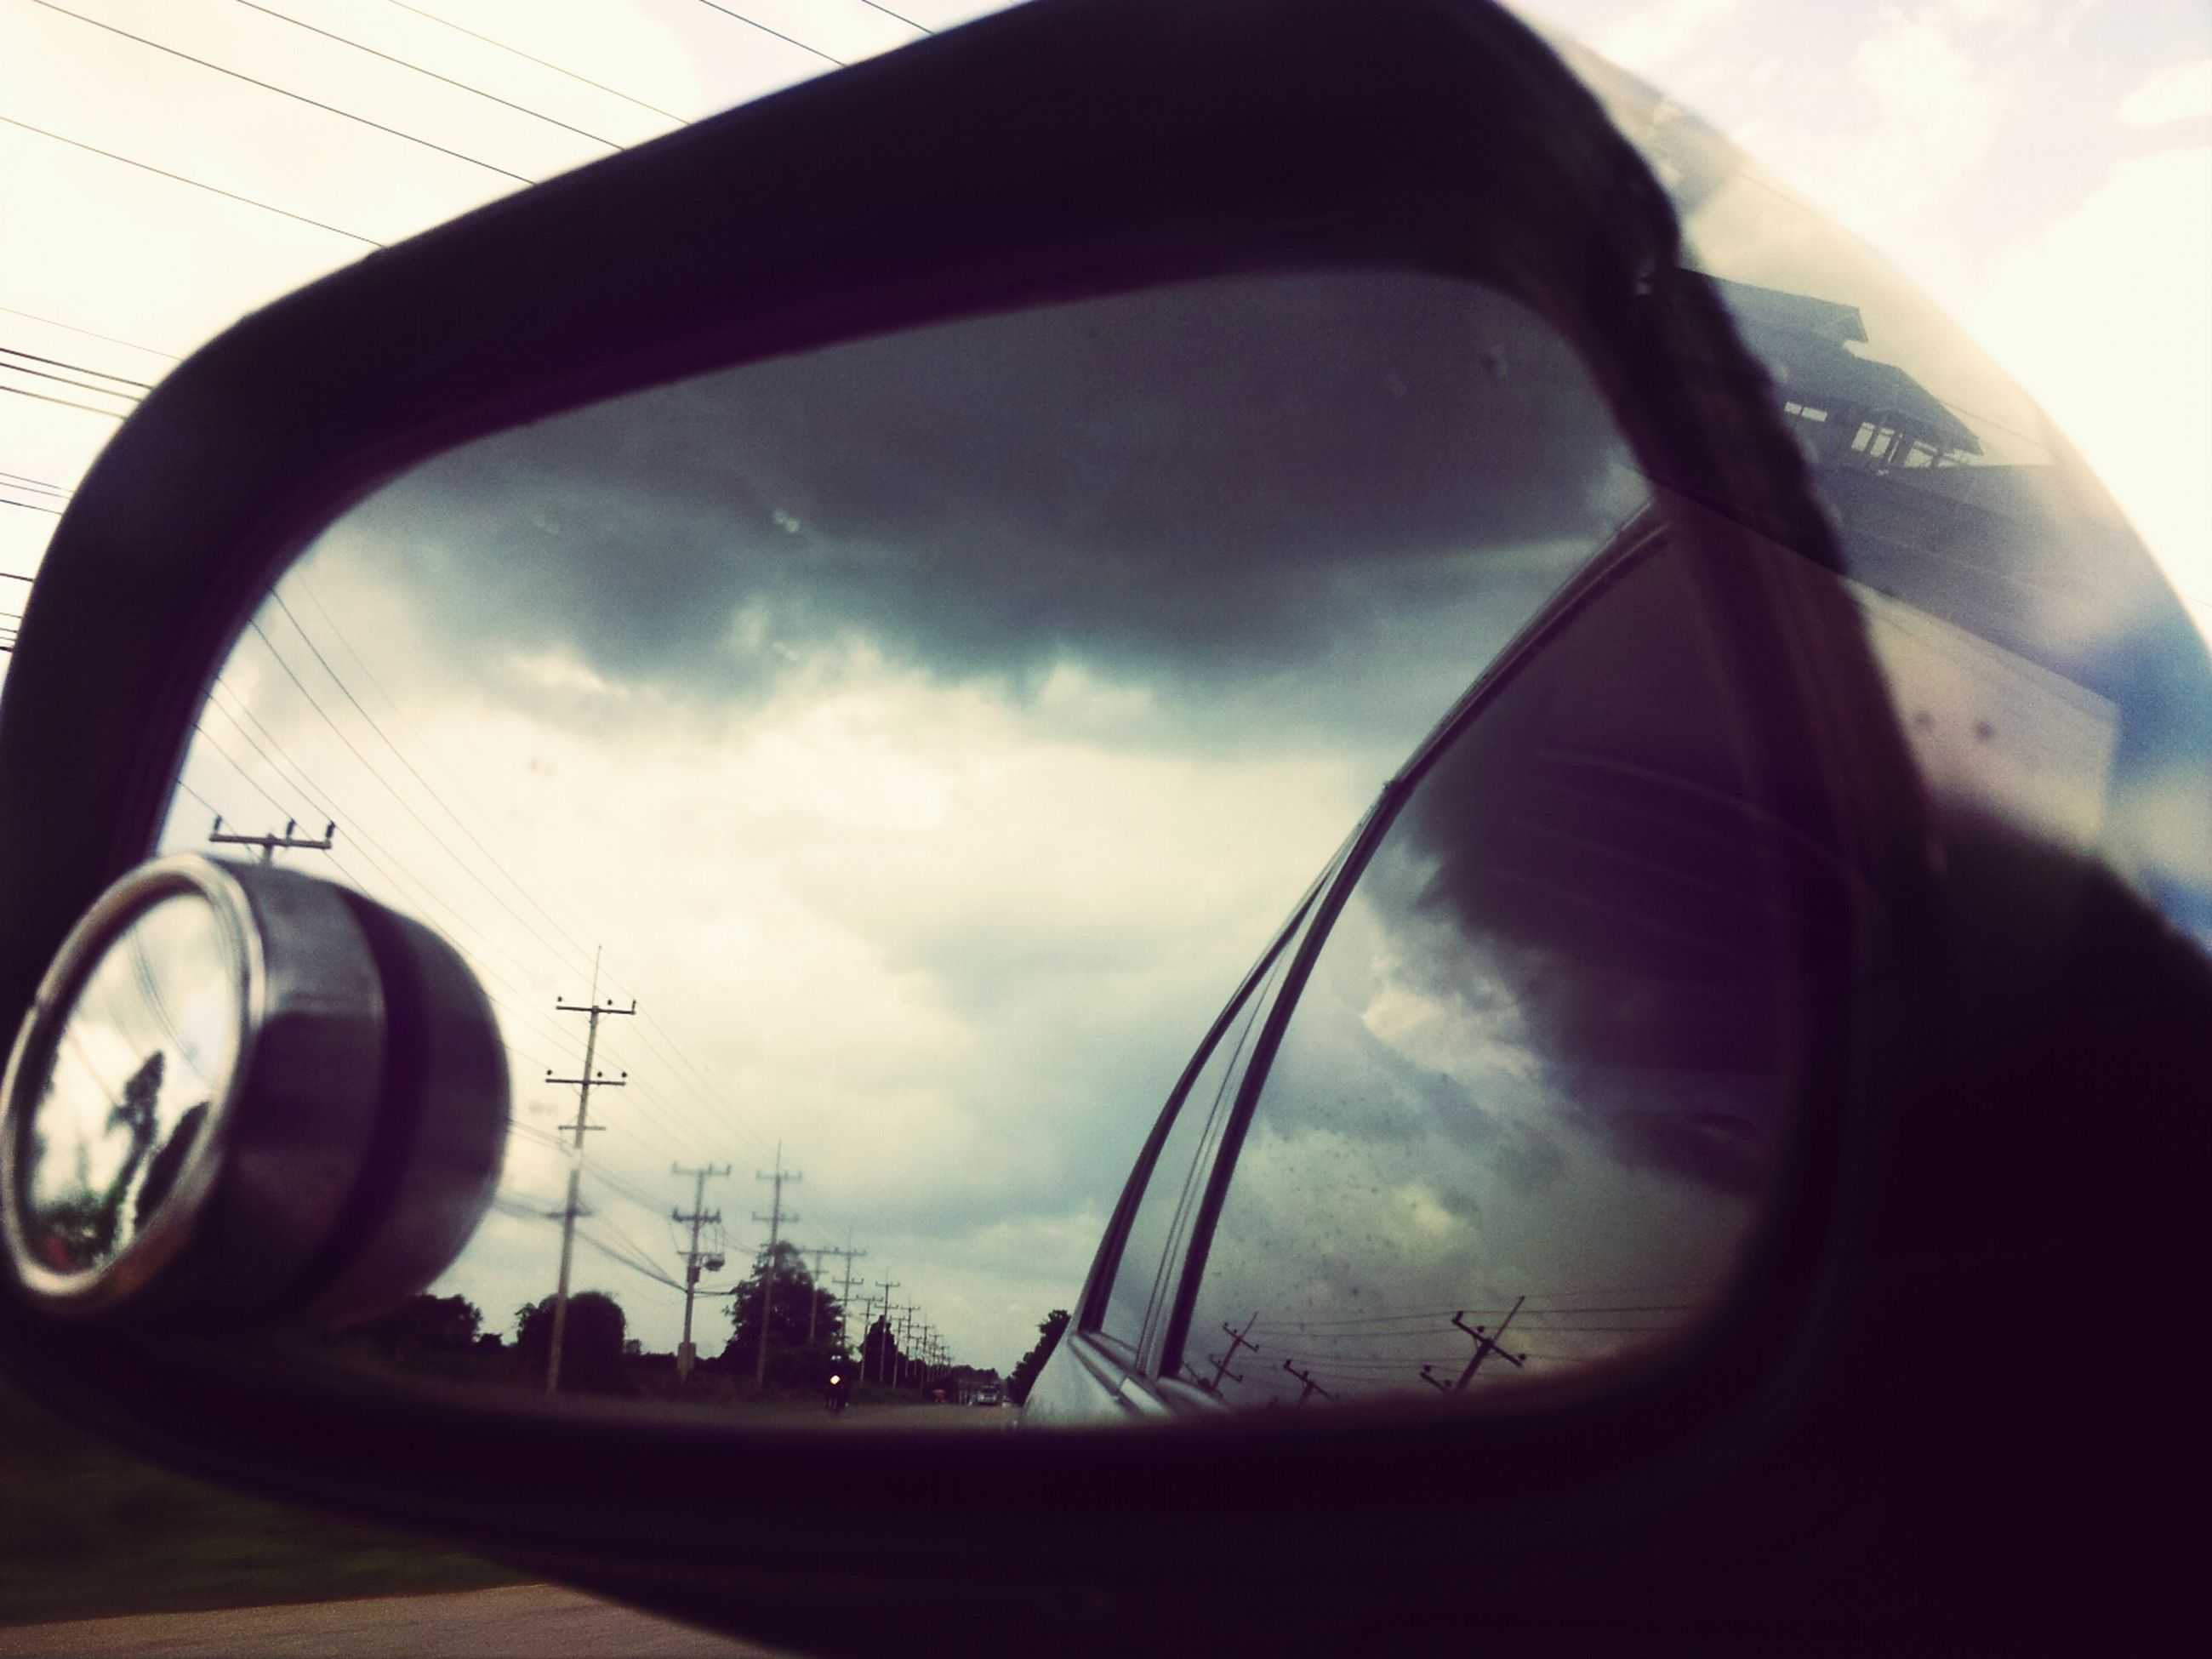 transportation, mode of transport, land vehicle, car, sky, vehicle interior, air vehicle, side-view mirror, airplane, cloud - sky, glass - material, part of, reflection, road, vehicle part, street, travel, transparent, stationary, cropped